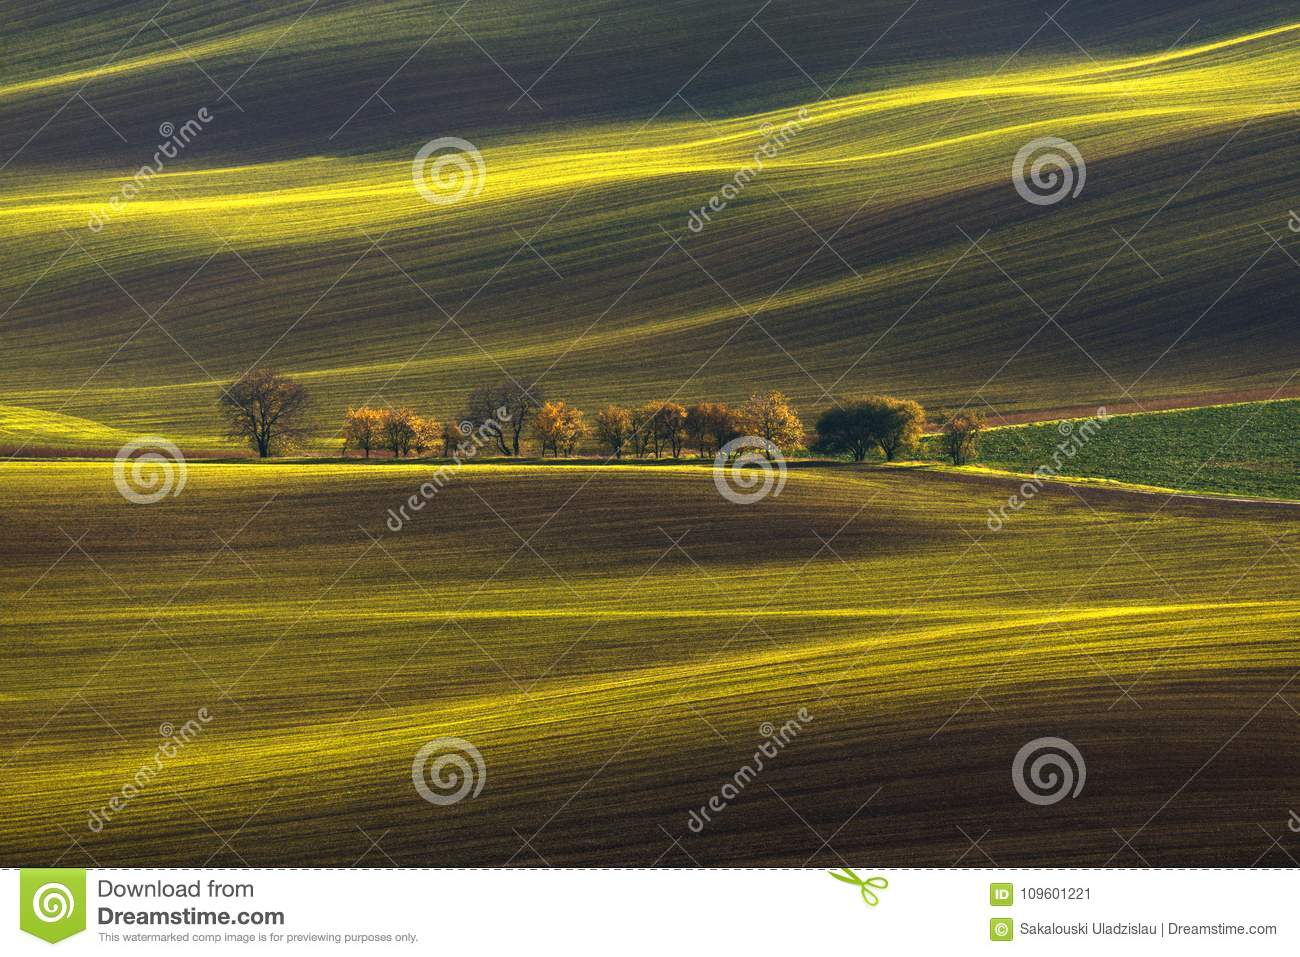 Agricultural Rolling Spring / Autumn Landscape.Natural Landscape In Brown And Yellow Color. Waved Cultivated Row Field With Beauti